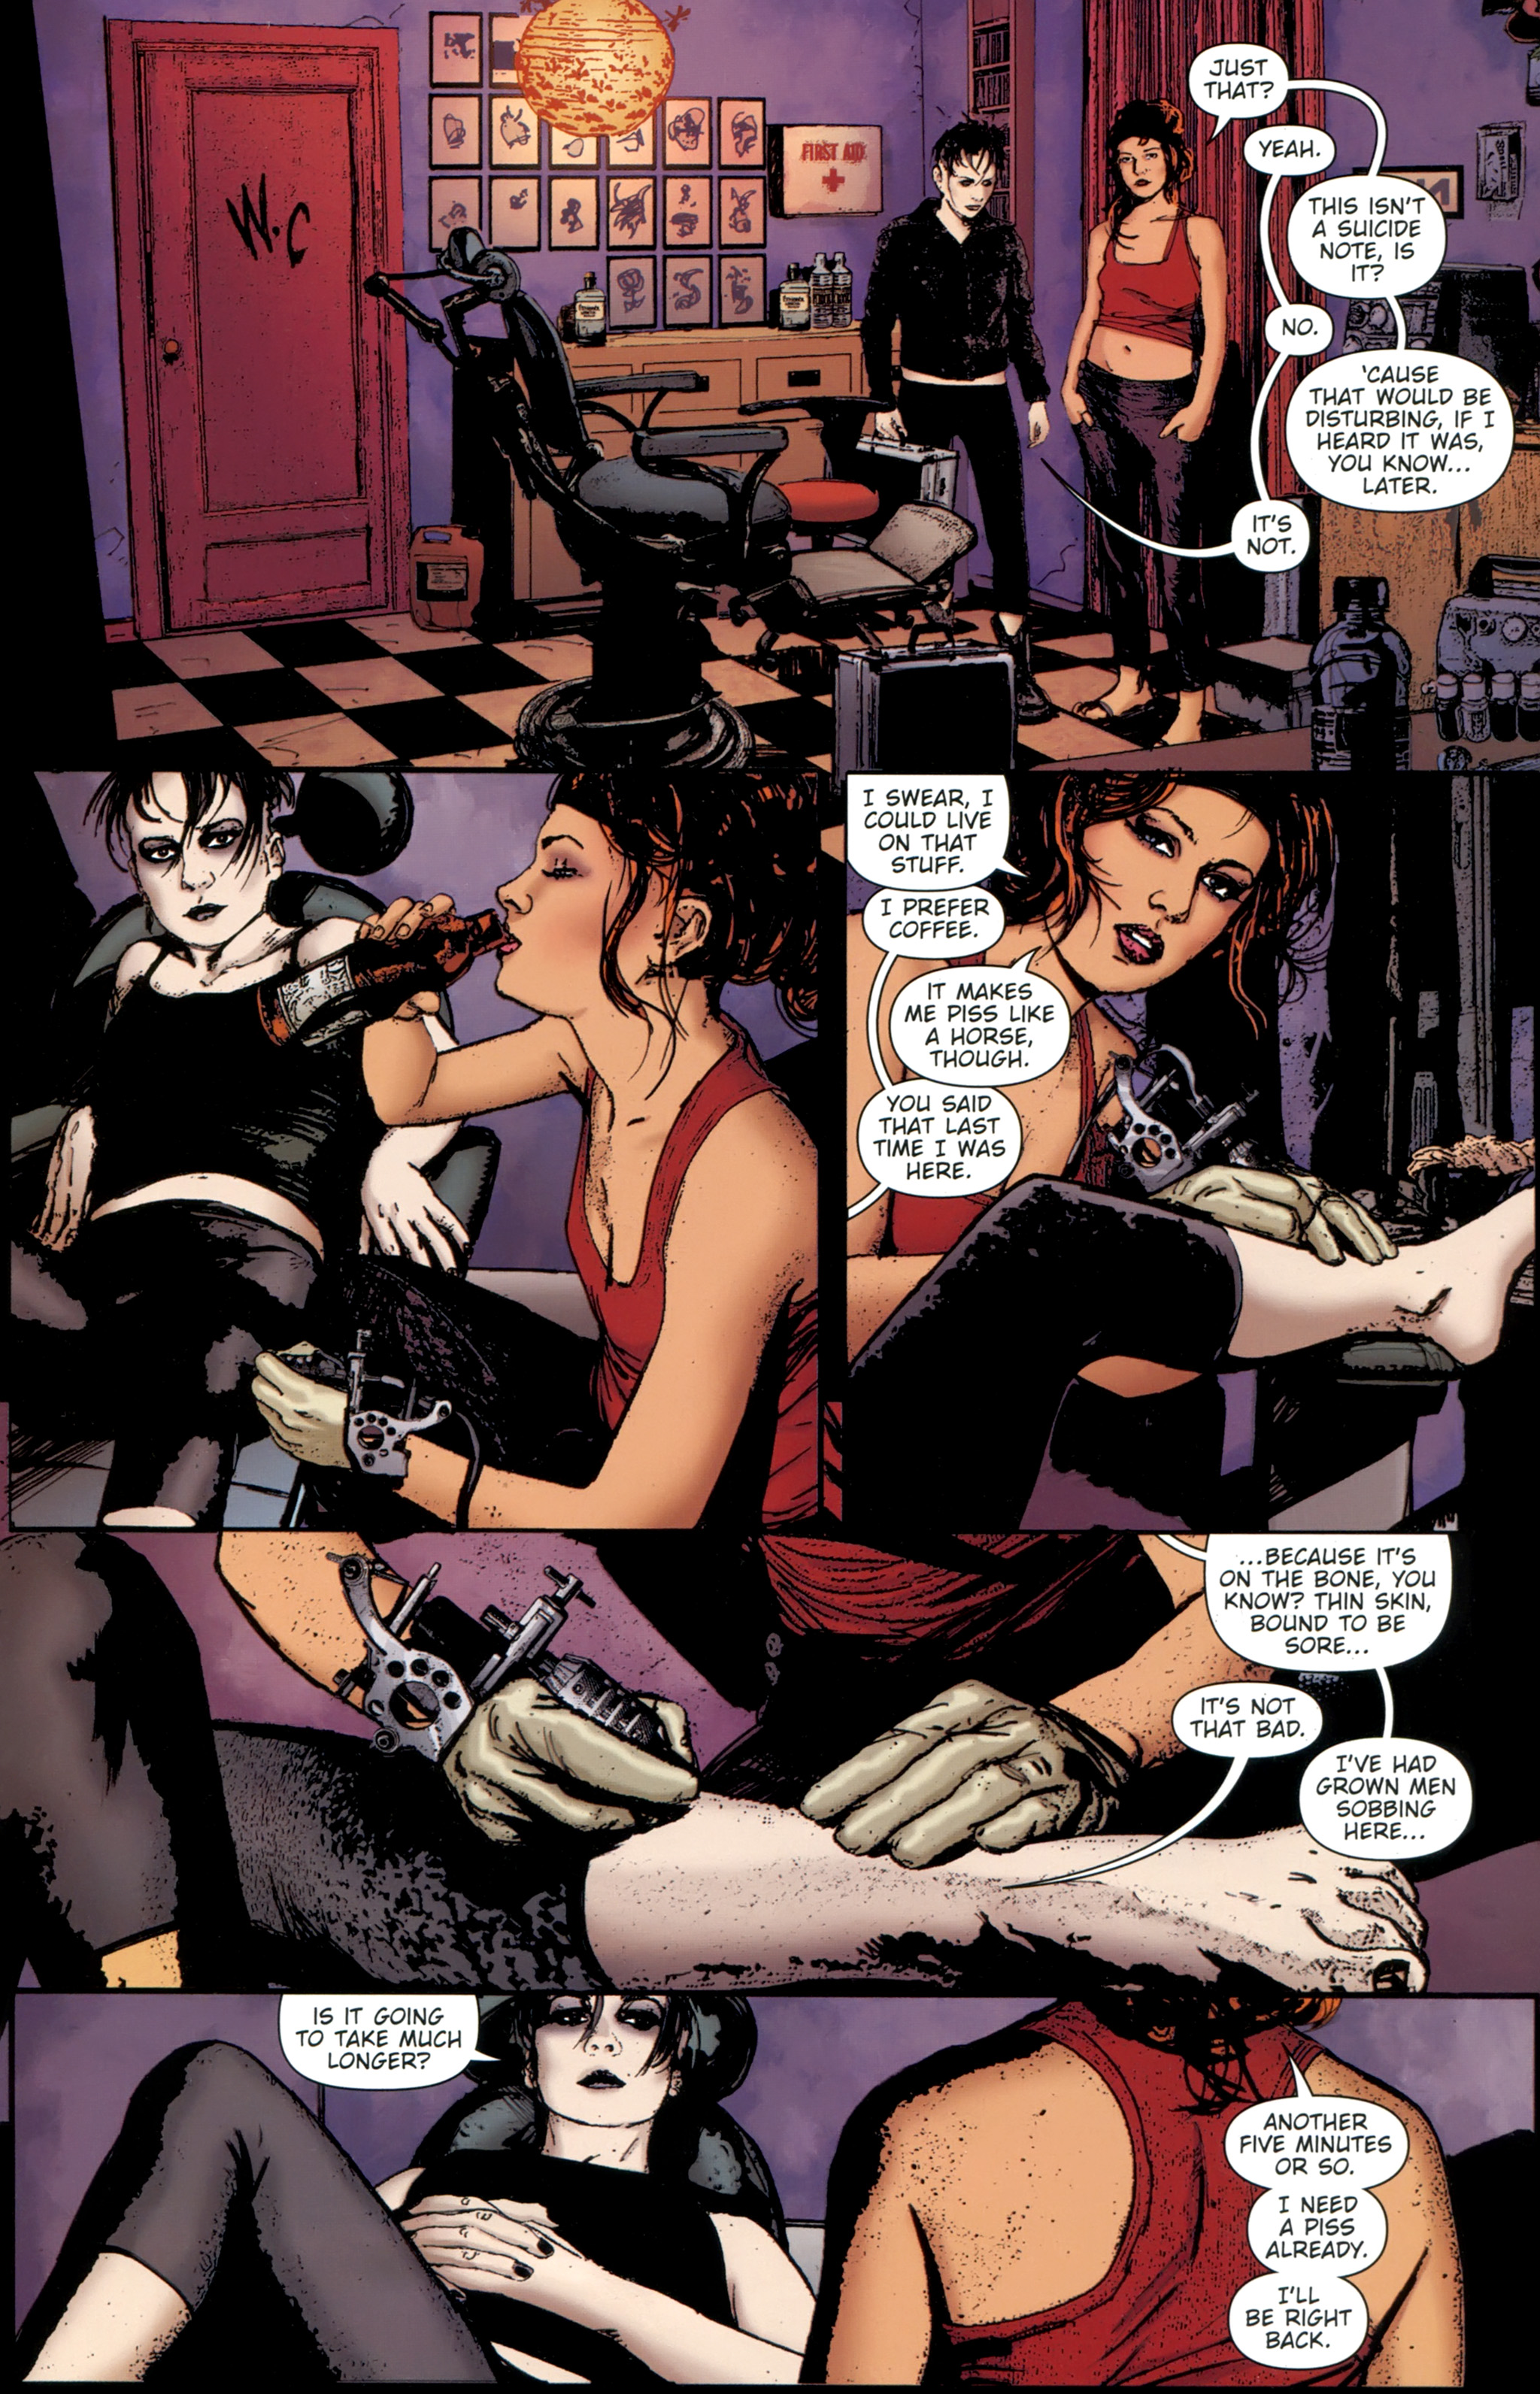 Read online The Girl With the Dragon Tattoo comic -  Issue # TPB 1 - 136